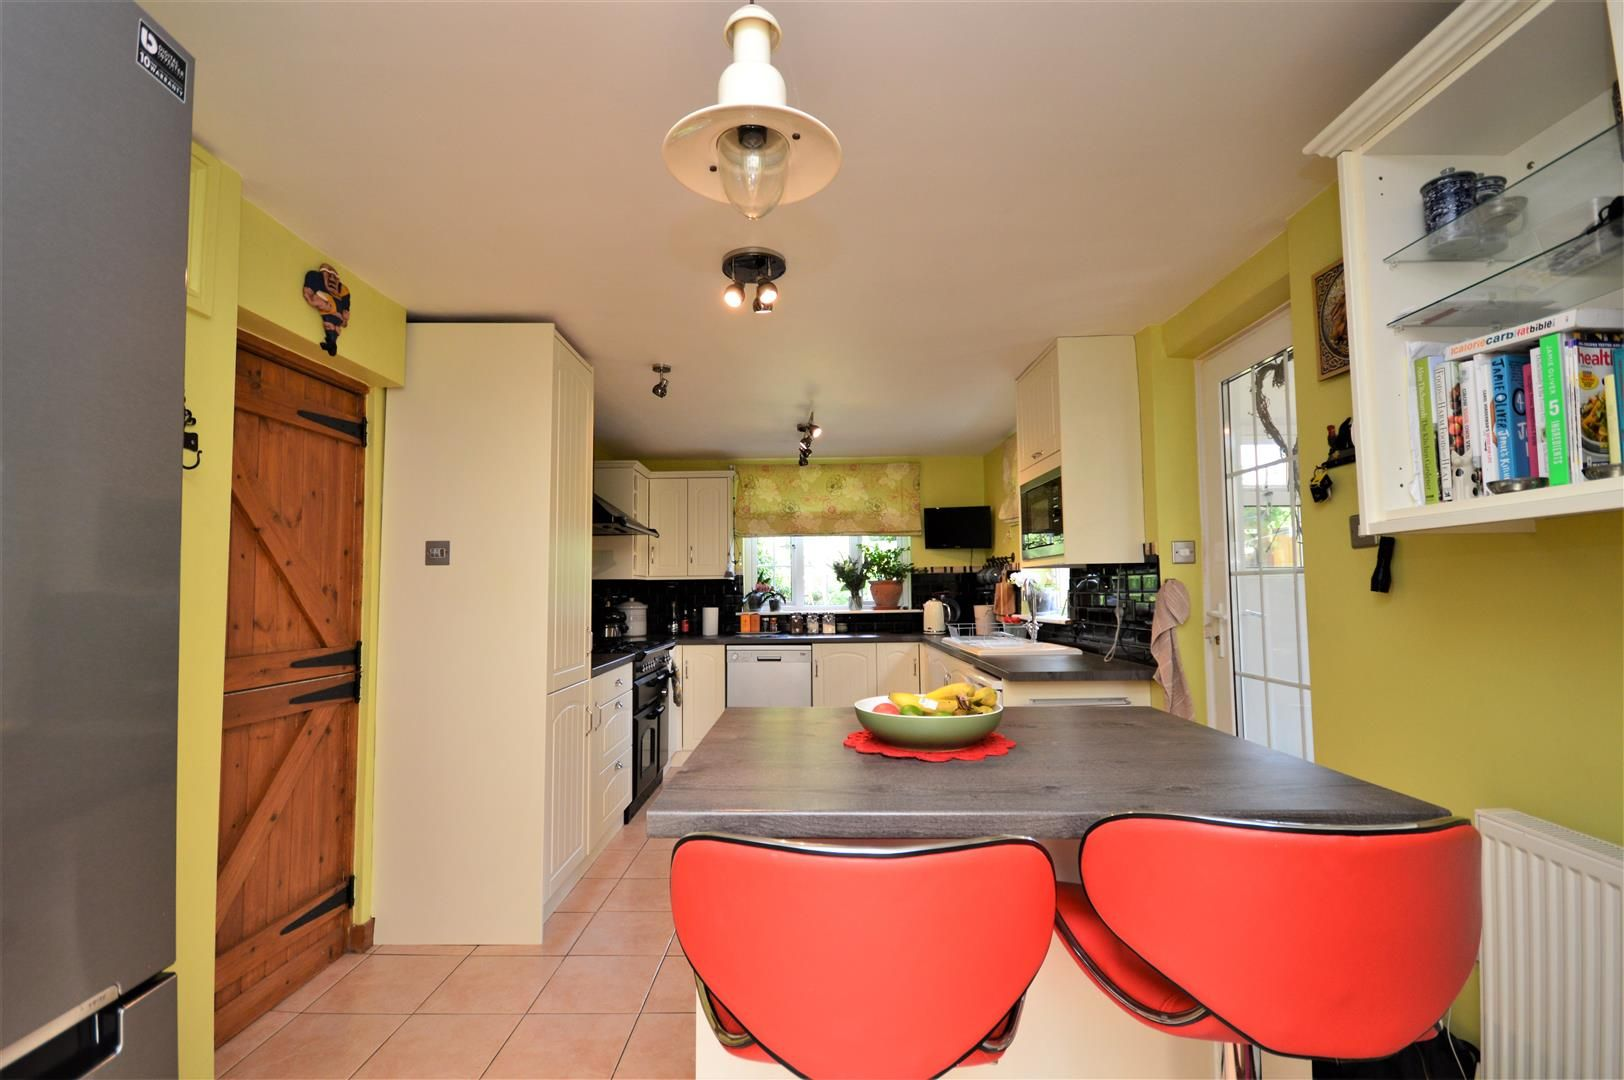 3 bed semi-detached for sale in Stretton Sugwas  - Property Image 6